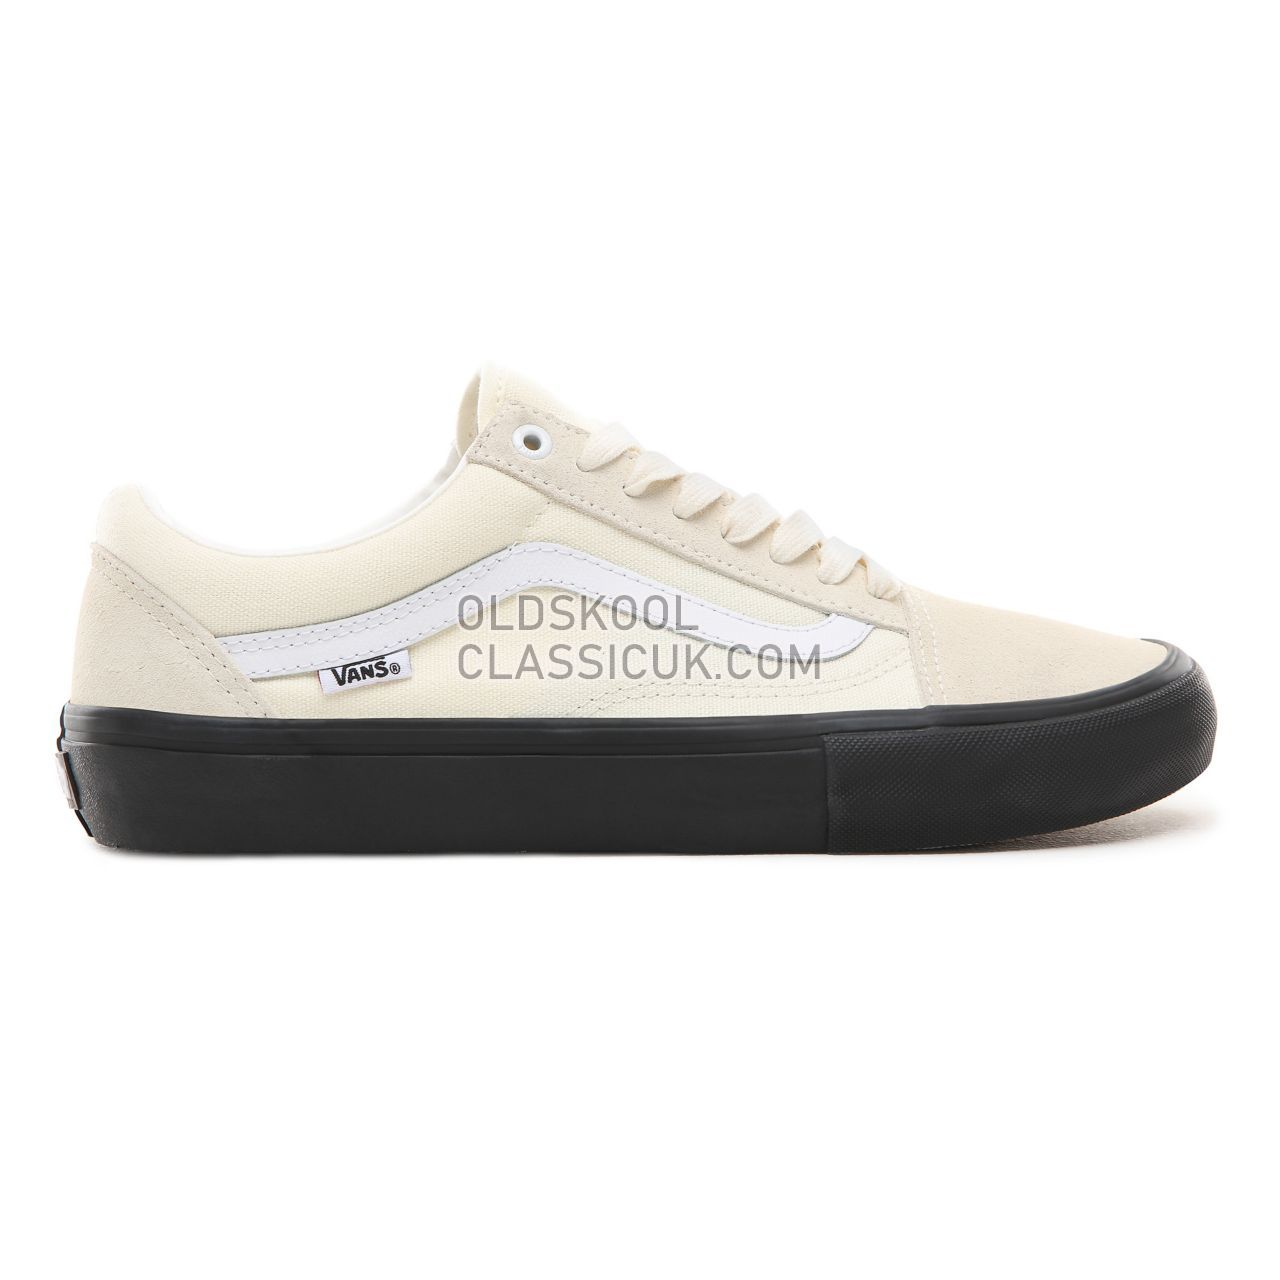 Vans Old Skool Pro Sneakers Mens Womens Unisex Classic White/Black V00ZD4U20 Shoes